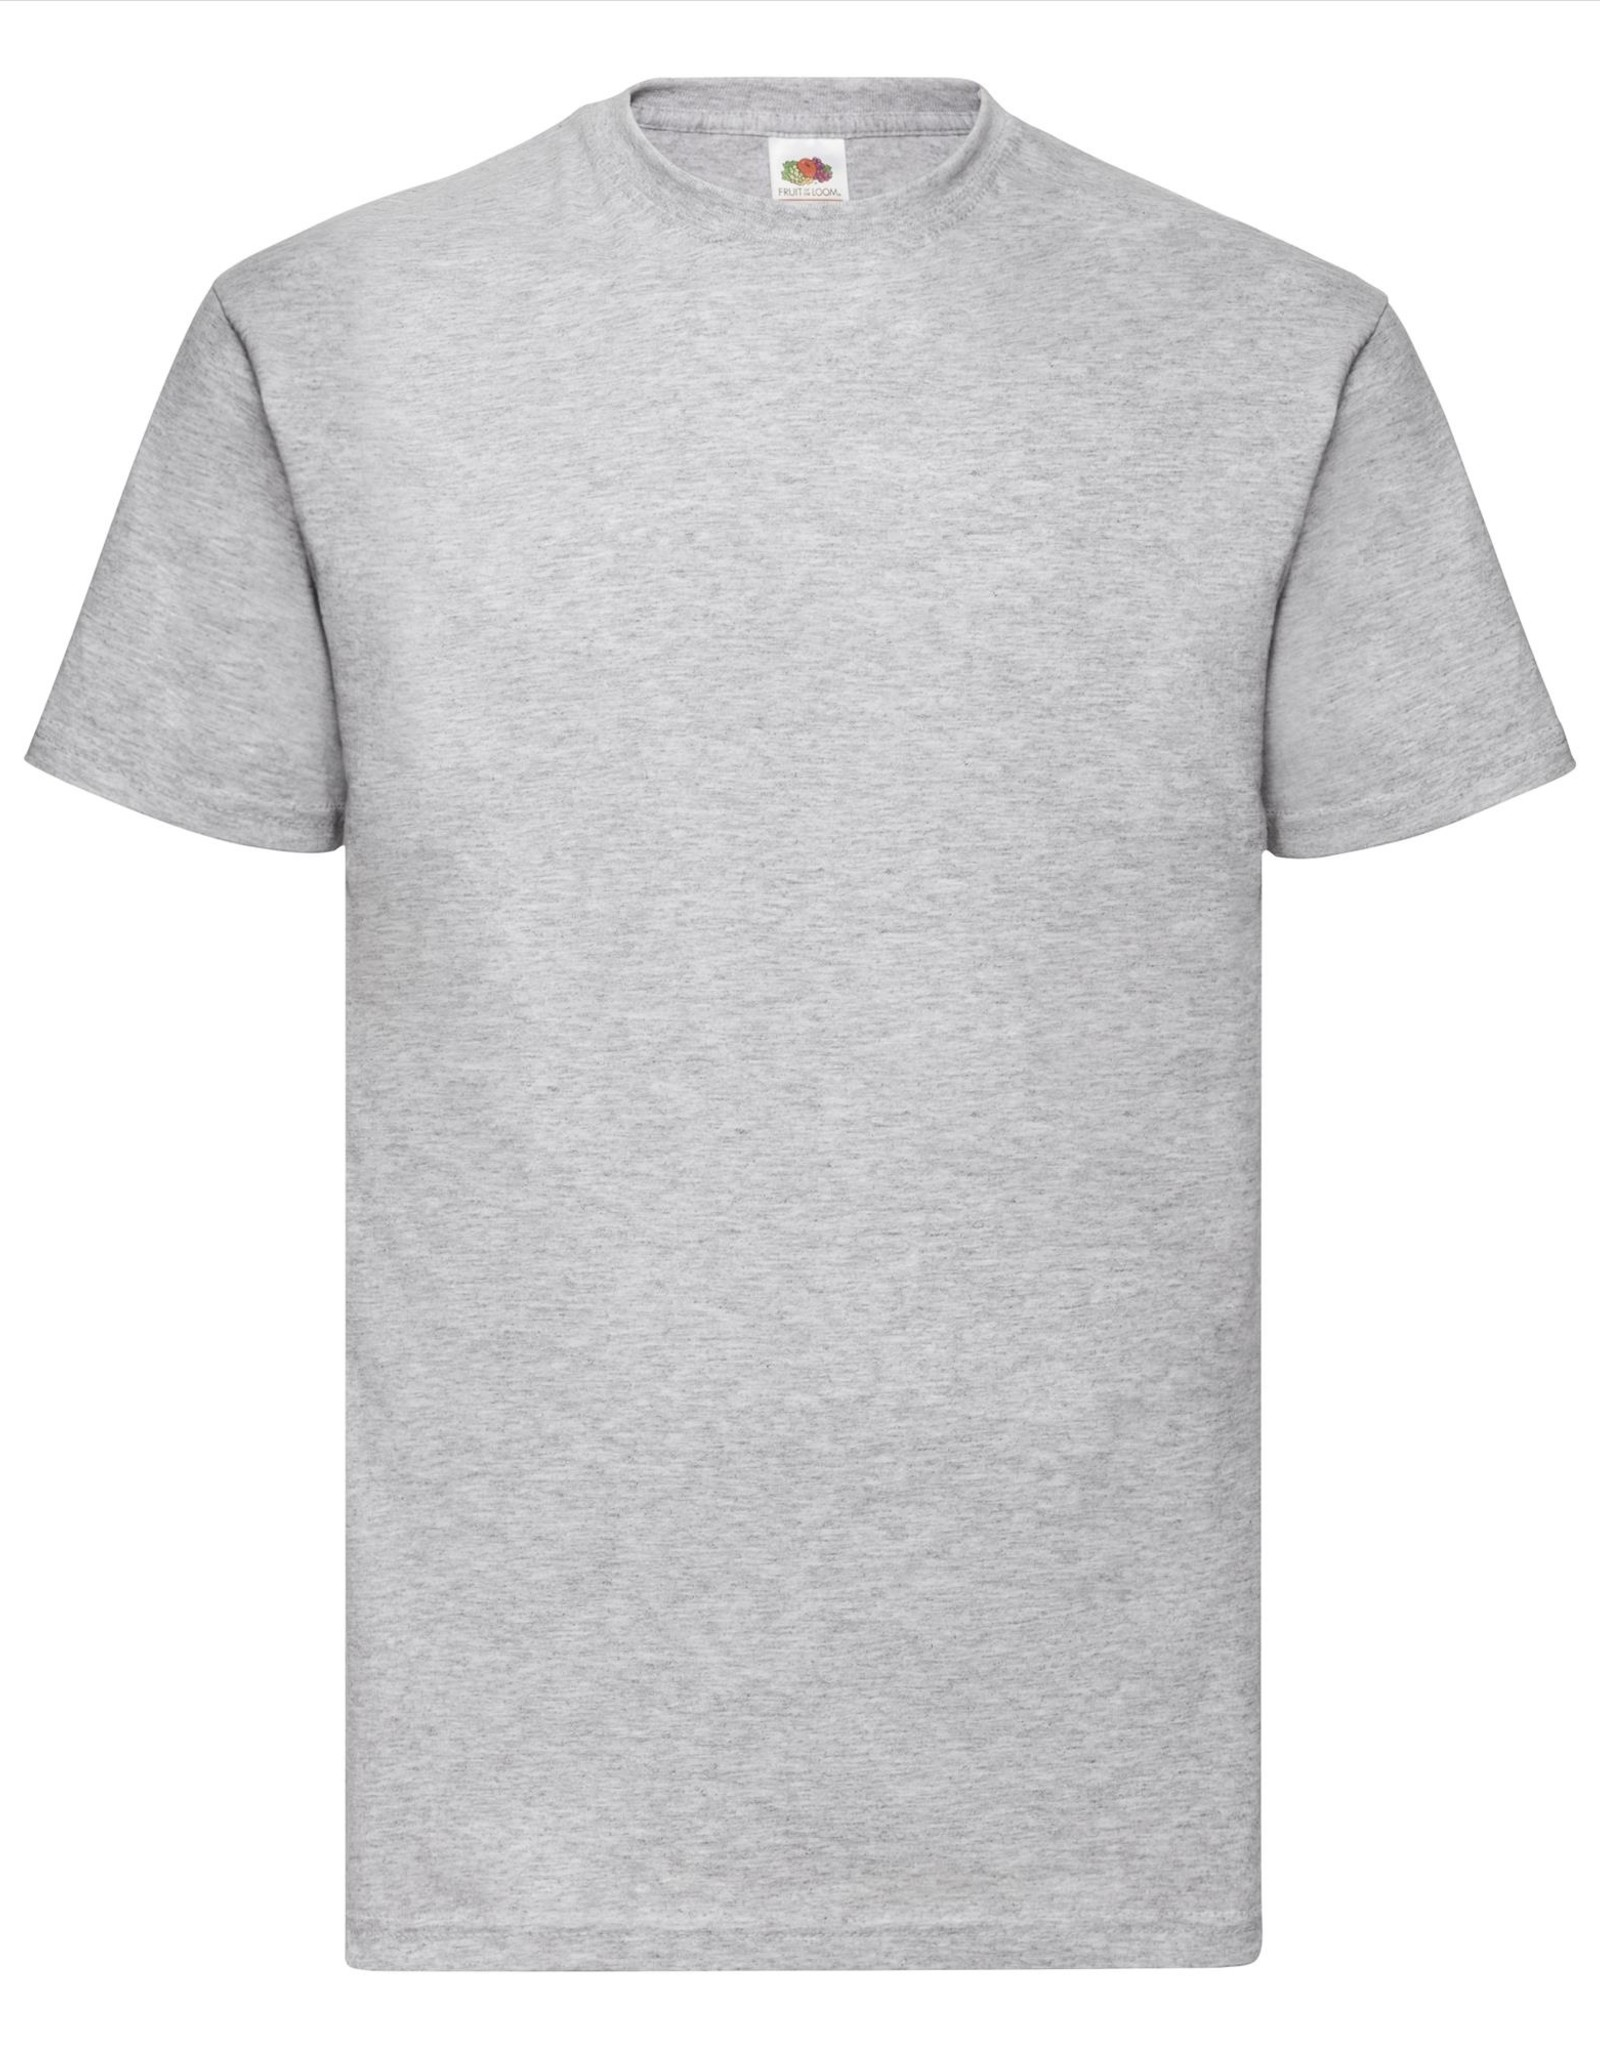 Fruit of the Loom T-SHIRT basic ronde hals 'Valueweight T' grijs